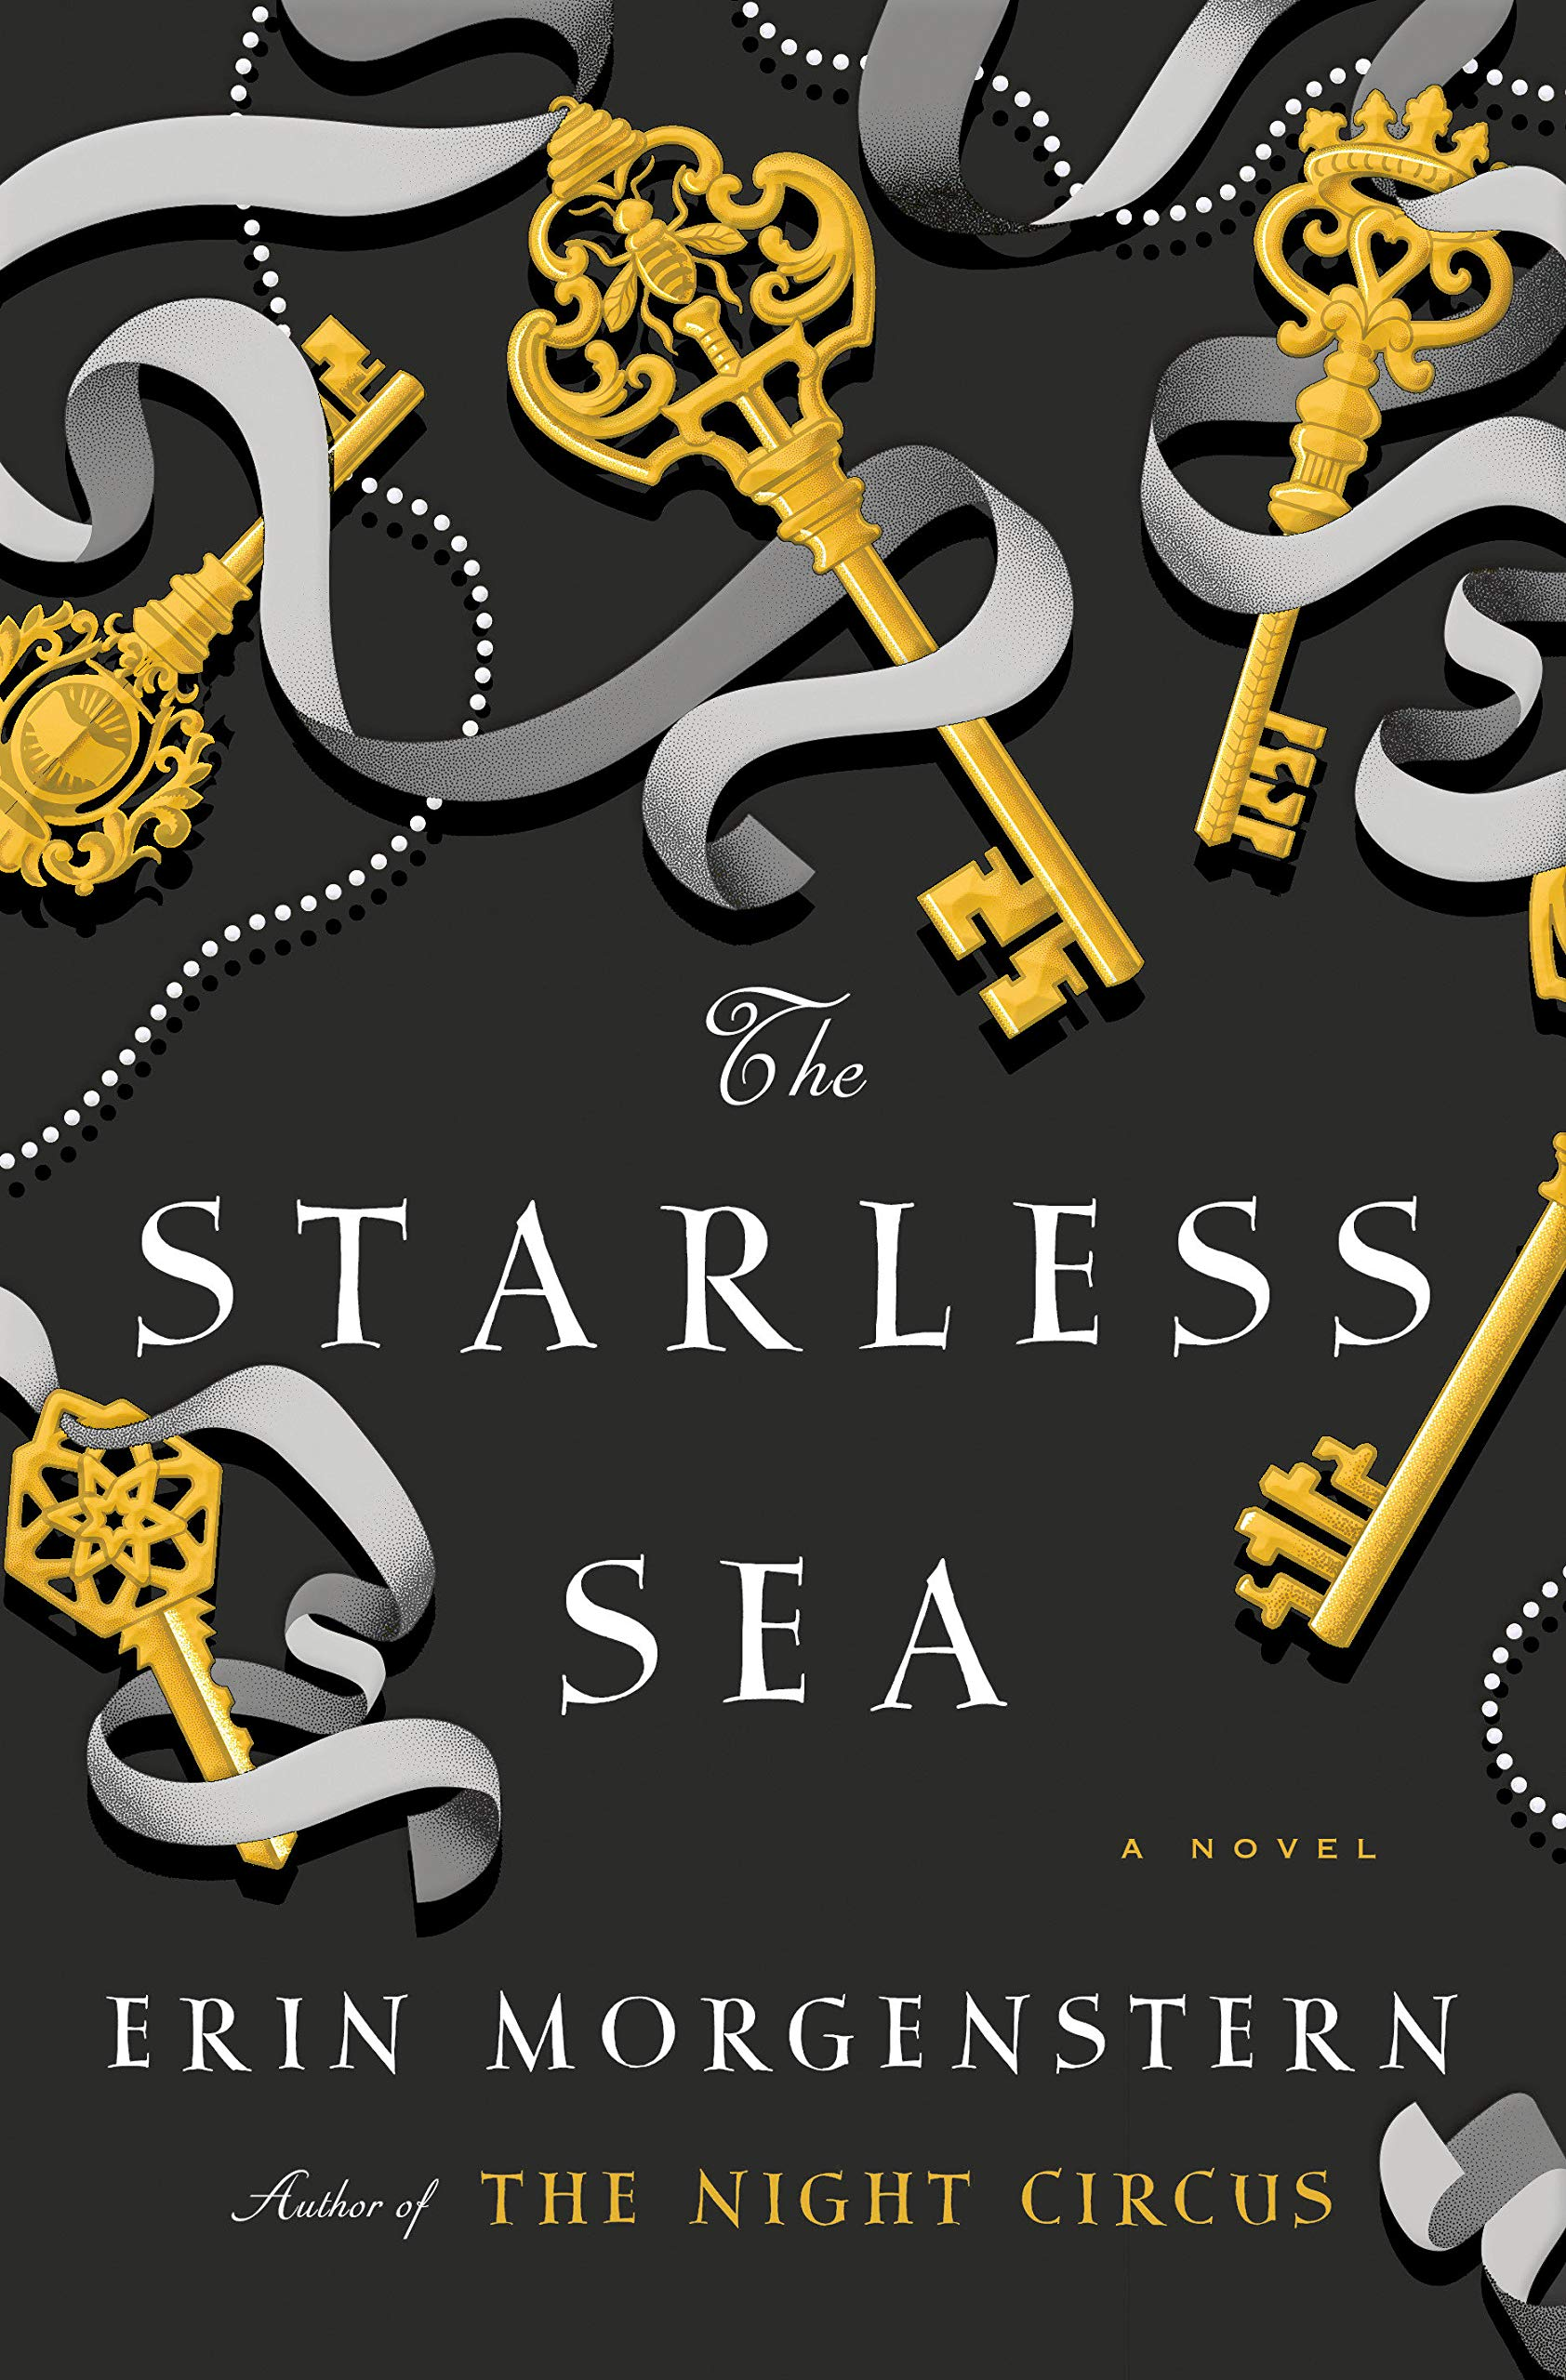 Book cover of the Starless Sea by Erin Morgenstenn, showing several fancy keys intertwined with silver ribbon